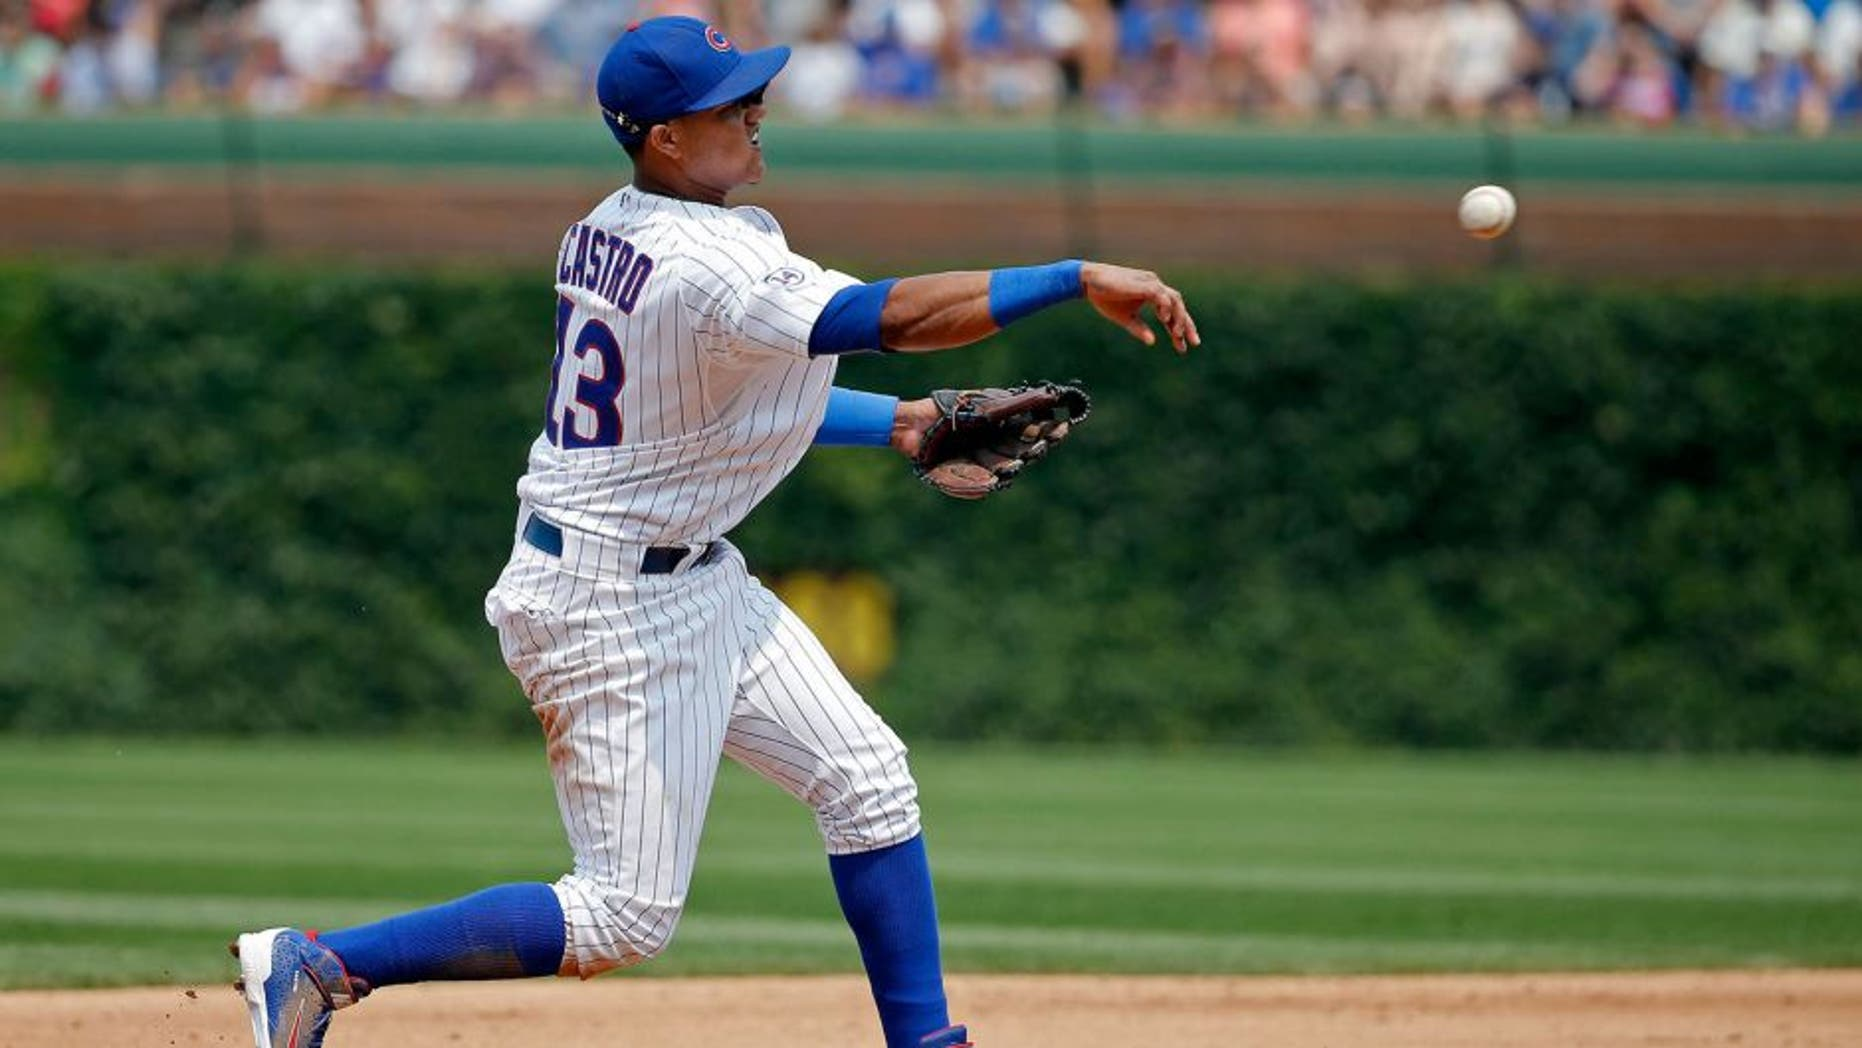 CHICAGO, IL - JULY 05: Starlin Castro #13 of the Chicago Cubs throws to first base for the out against the Miami Marlins during the fifth inning at Wrigley Field on July 5, 2015 in Chicago, Illinois. (Photo by Jon Durr/Getty Images)